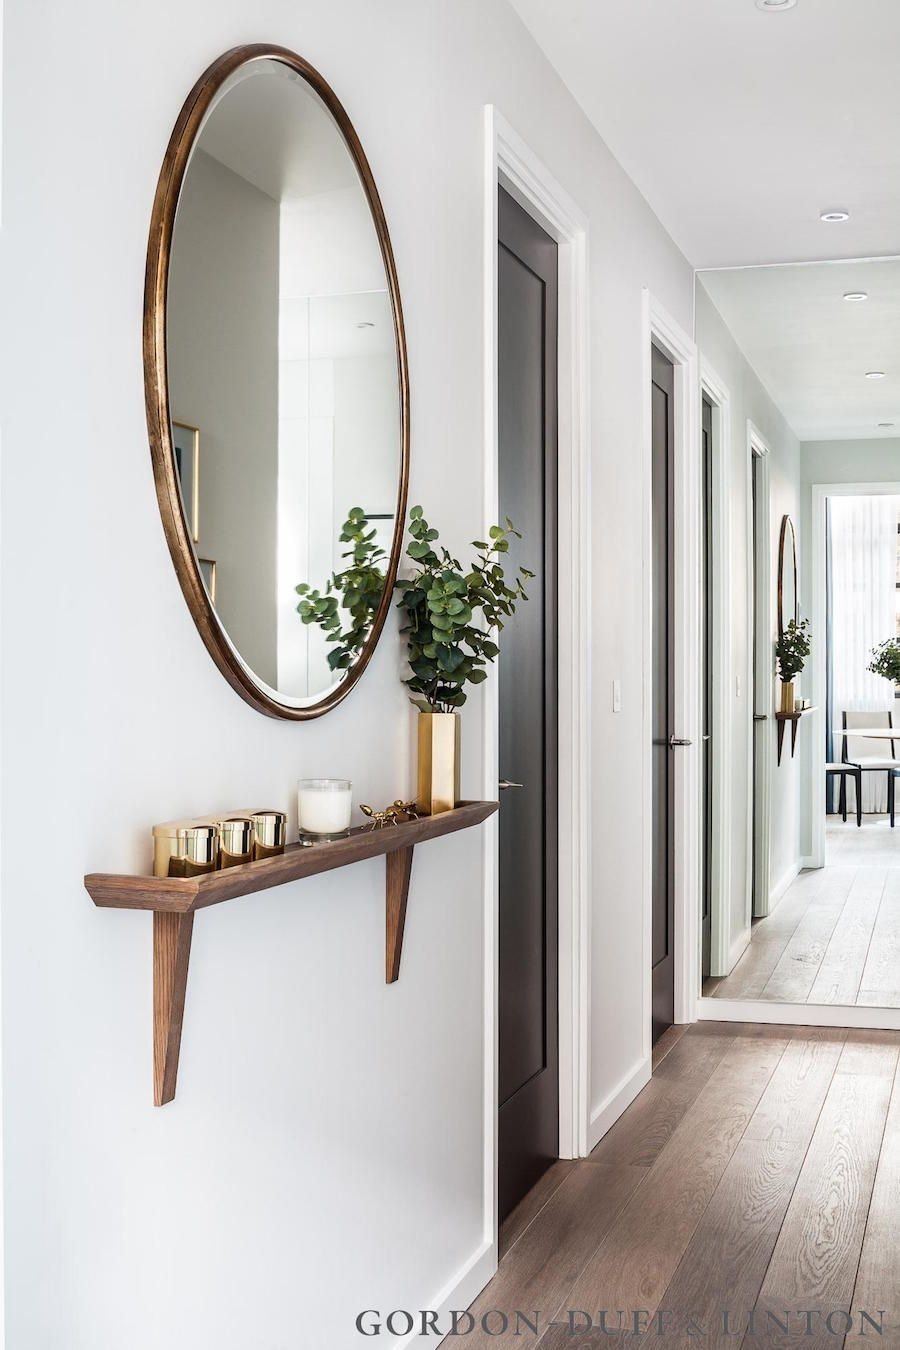 30 Of The Most Pretty & Practical Entryways | Minimal, Shelves And Pertaining To Recent Entrance Wall Accents (View 1 of 15)